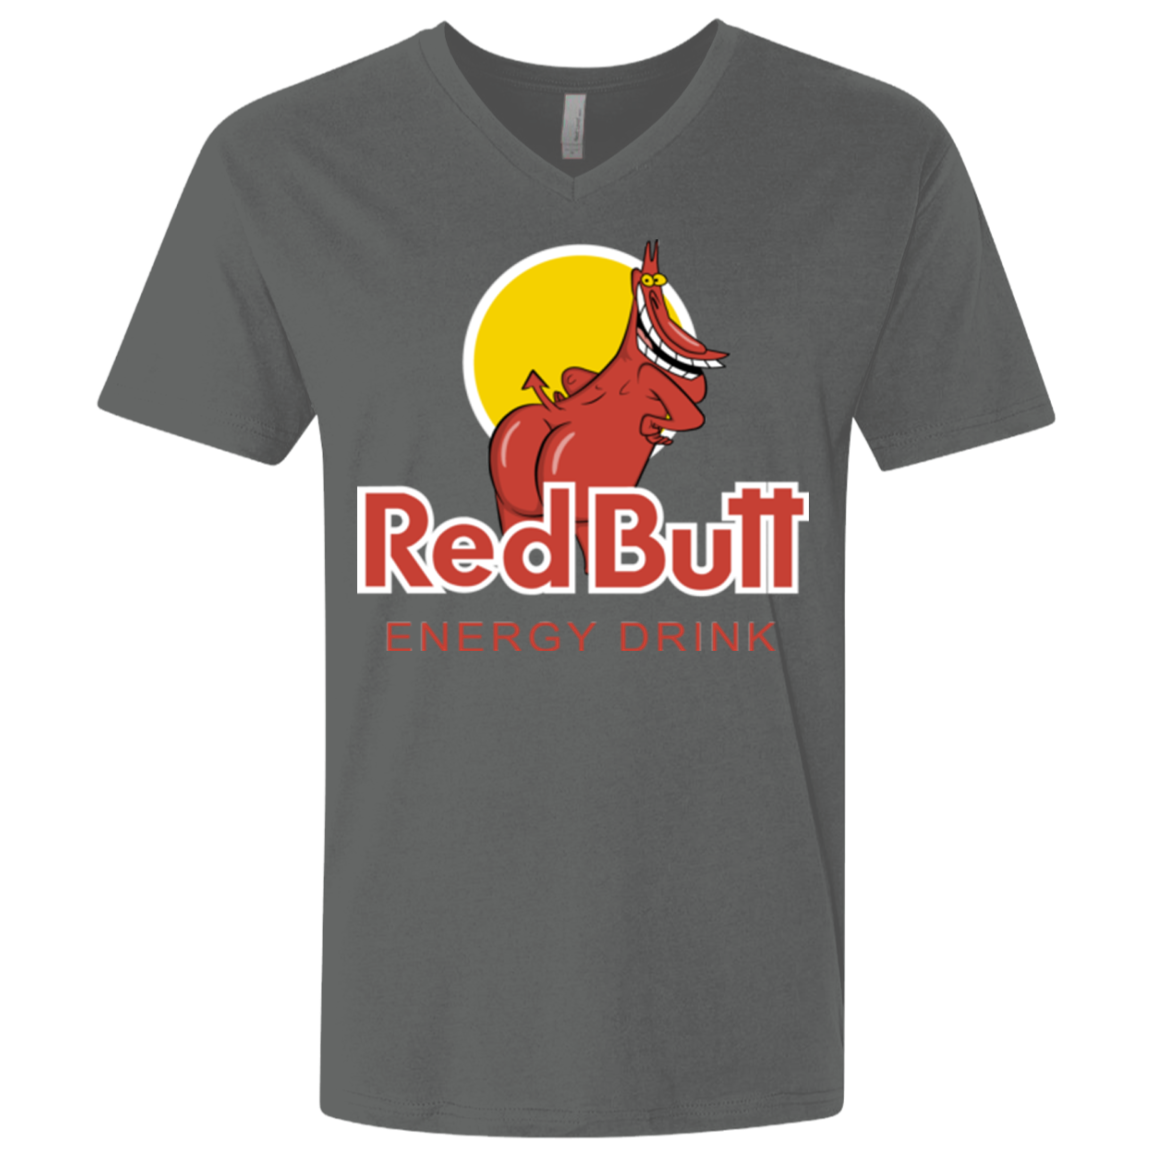 Red butt Men's Premium V-Neck